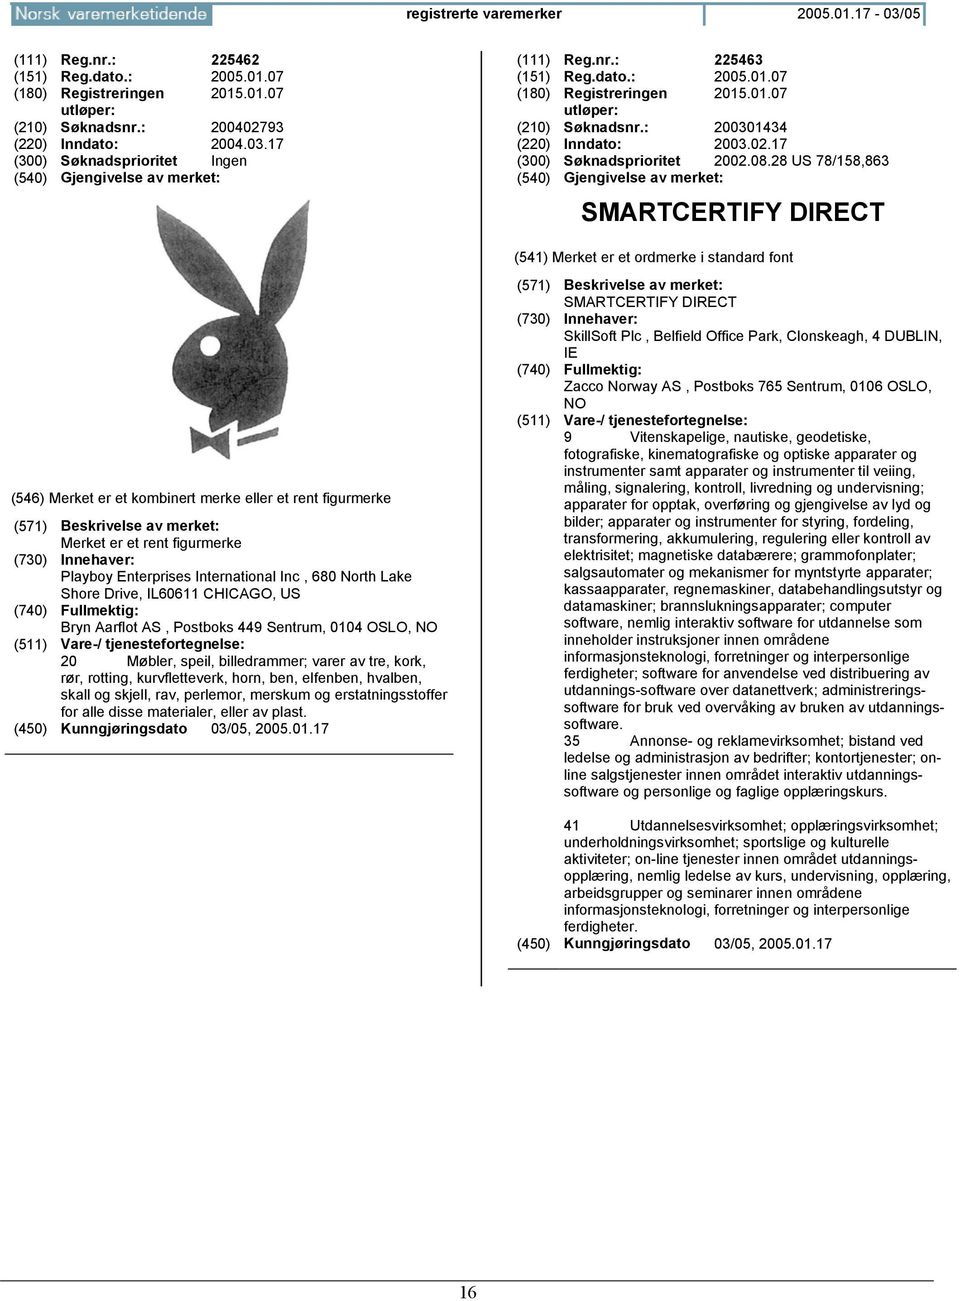 28 US 78/158,863 SMARTCERTIFY DIRECT Merket er et rent figurmerke Playboy Enterprises International Inc, 680 North Lake Shore Drive, IL60611 CHICAGO, US Bryn Aarflot AS, Postboks 449 Sentrum, 0104